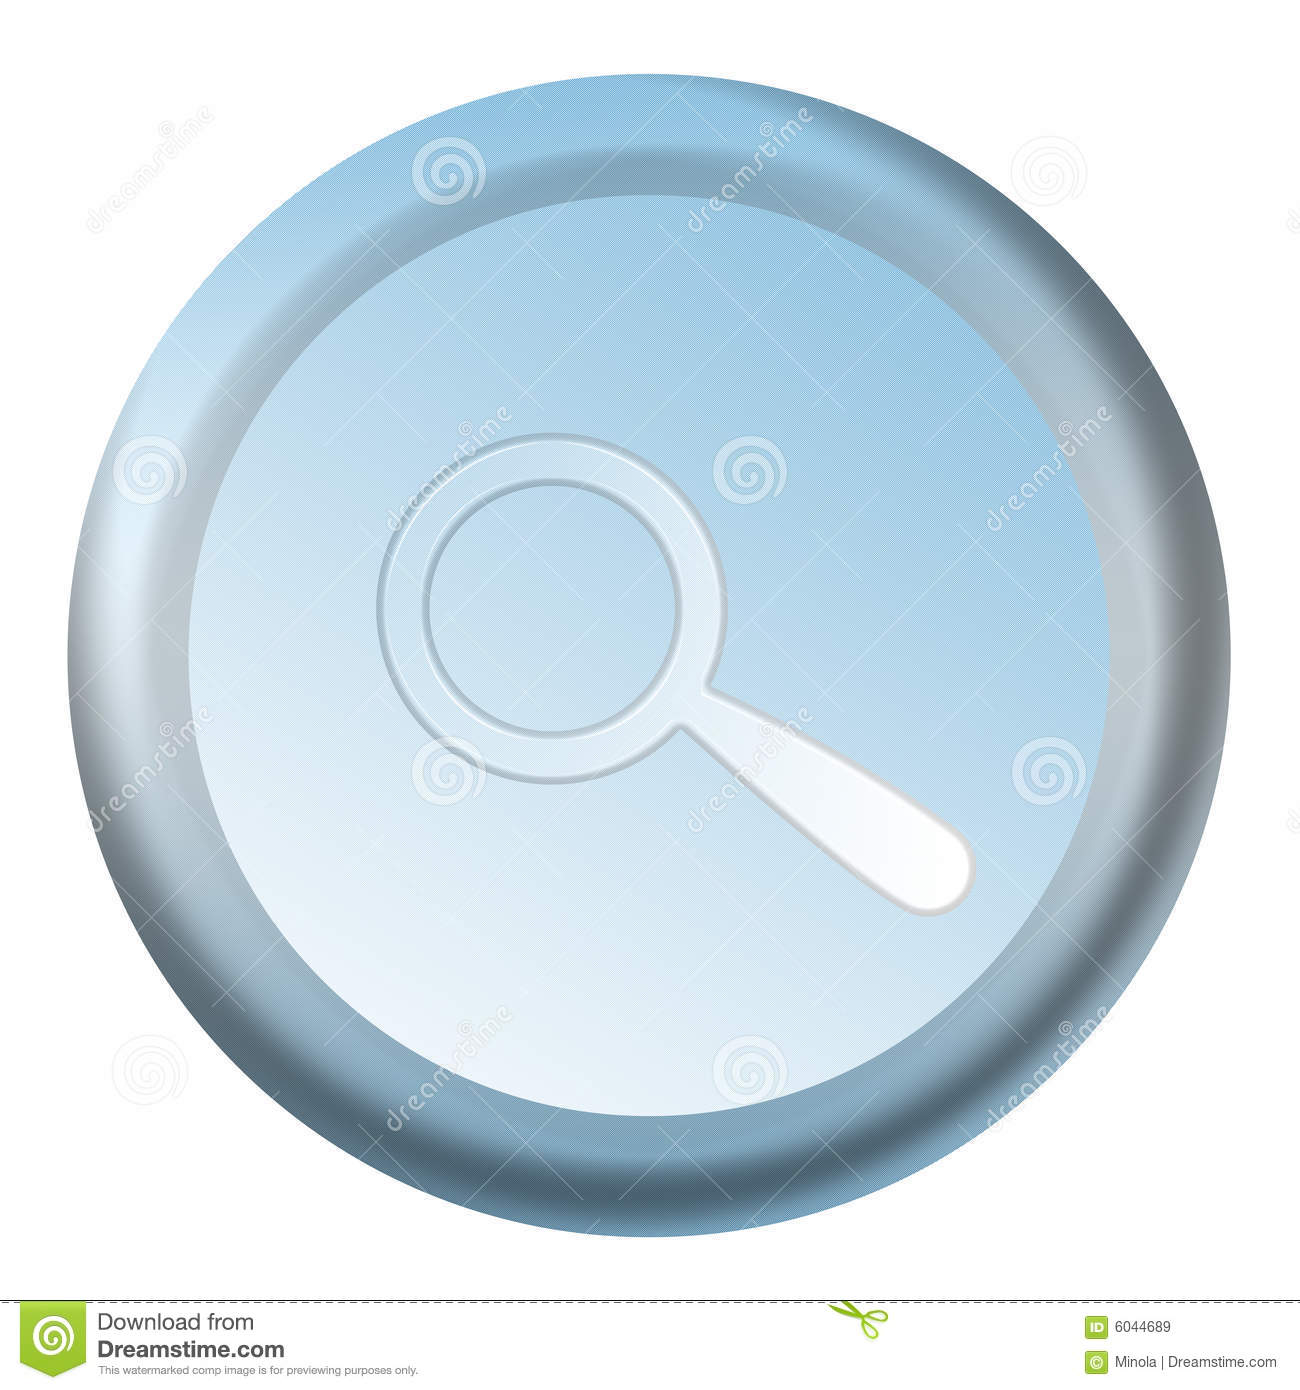 Blue Search Button Royalty Free Stock Images - Image: 6044689